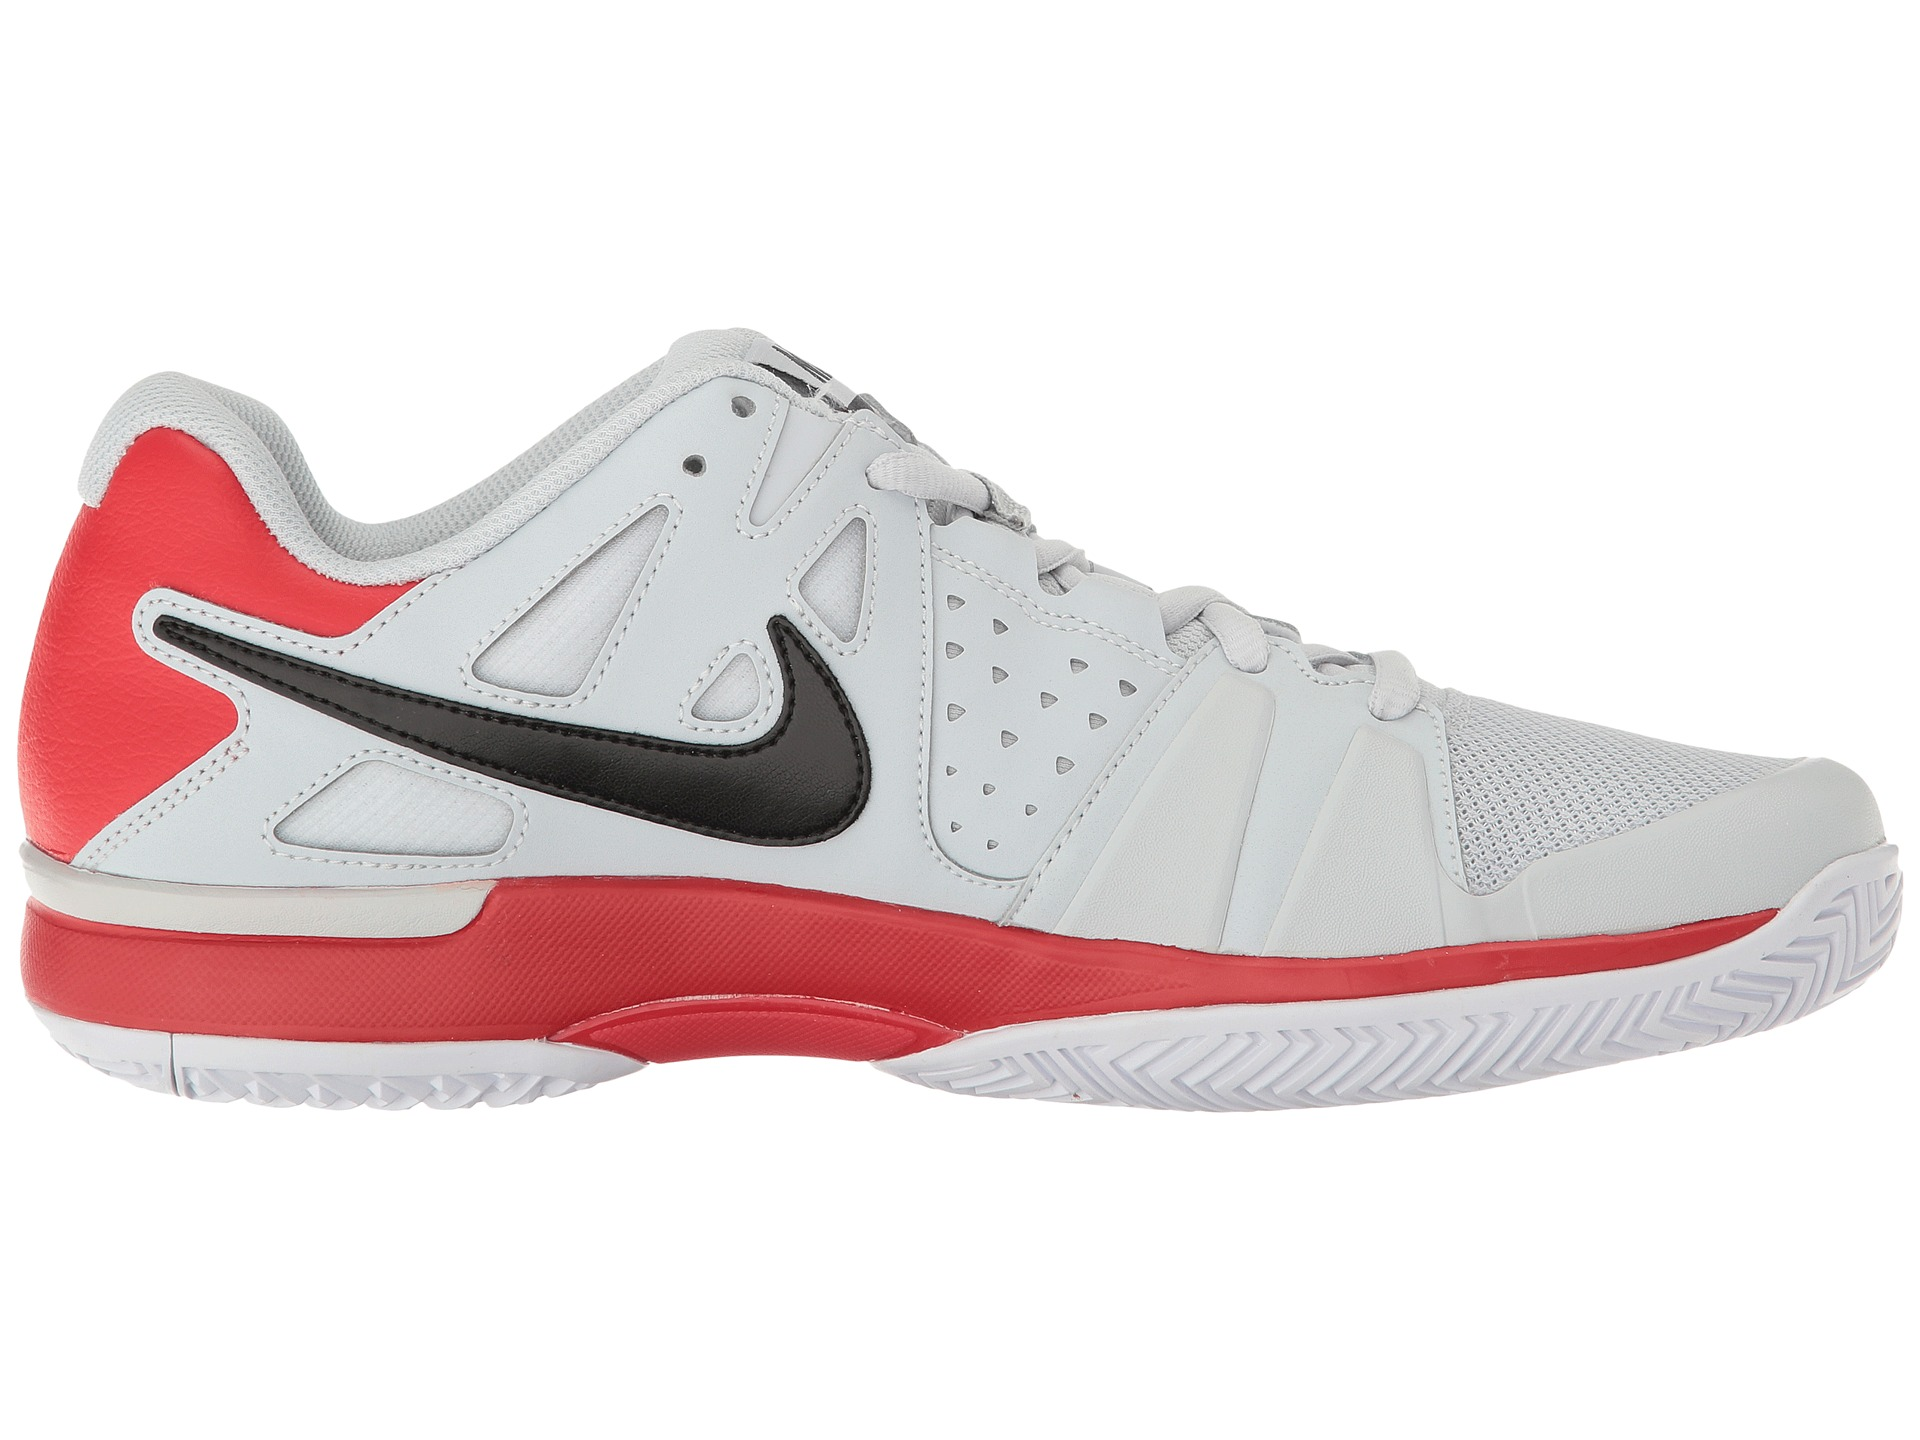 Nike Comfort Footbed Tennis Shoes